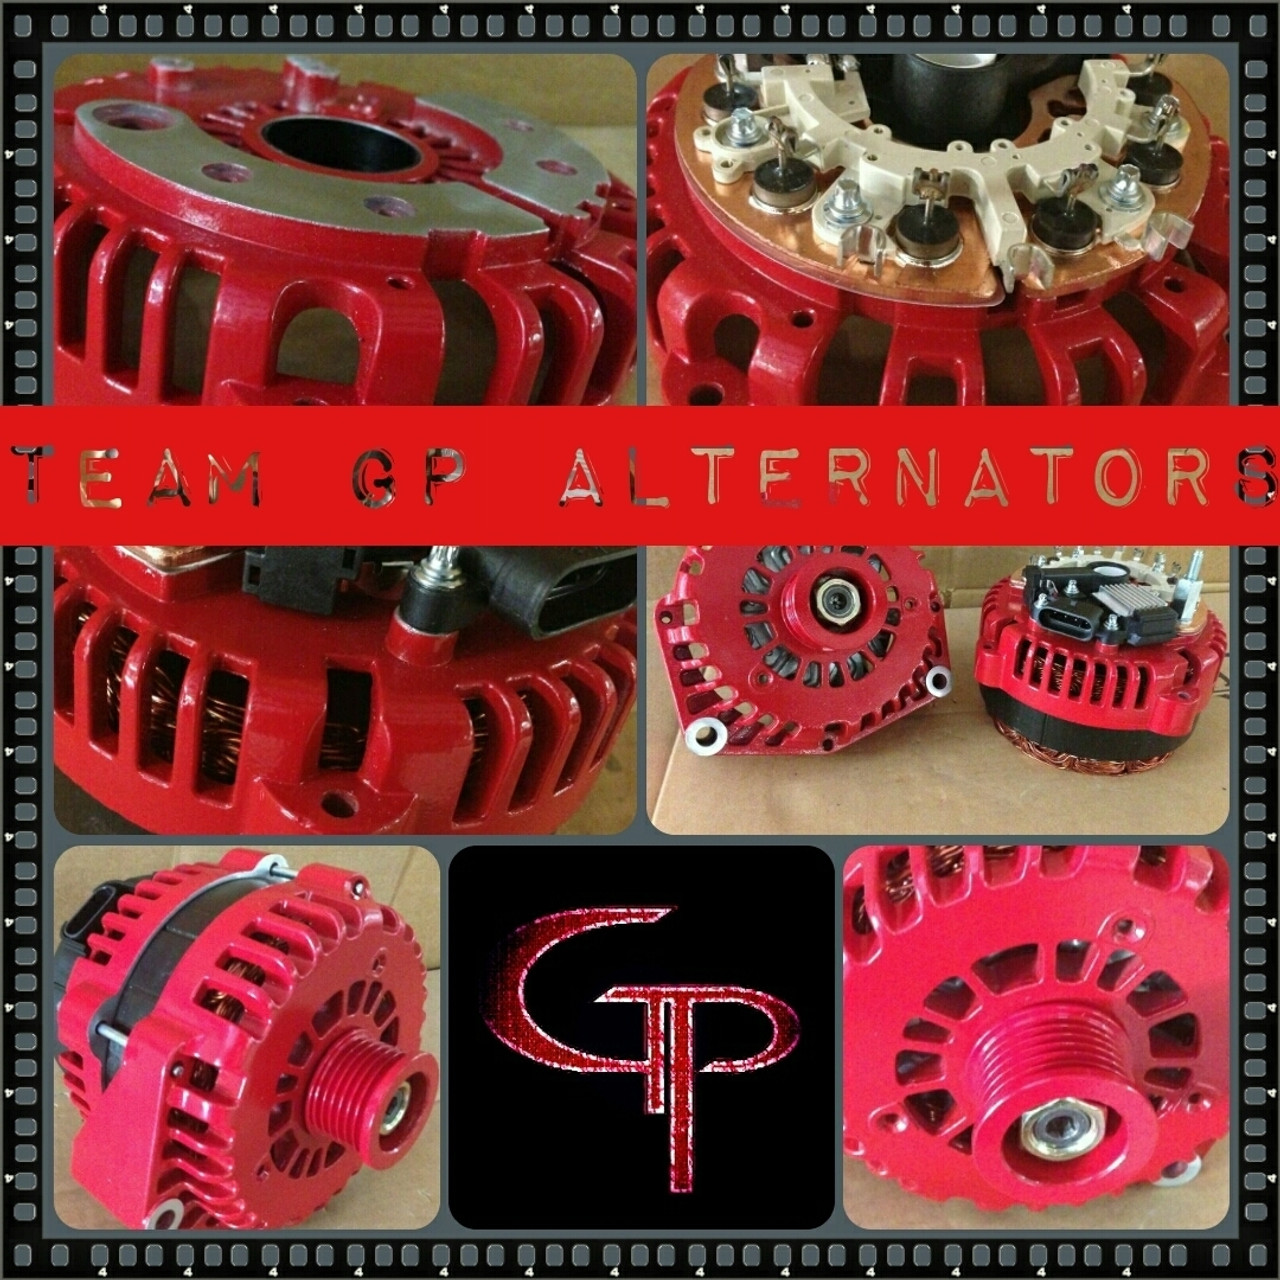 PONTIAC GRAND AM 2.2L, 2.4L, 3.4L -1999-2004- 200AMP TEAM GP Alternator